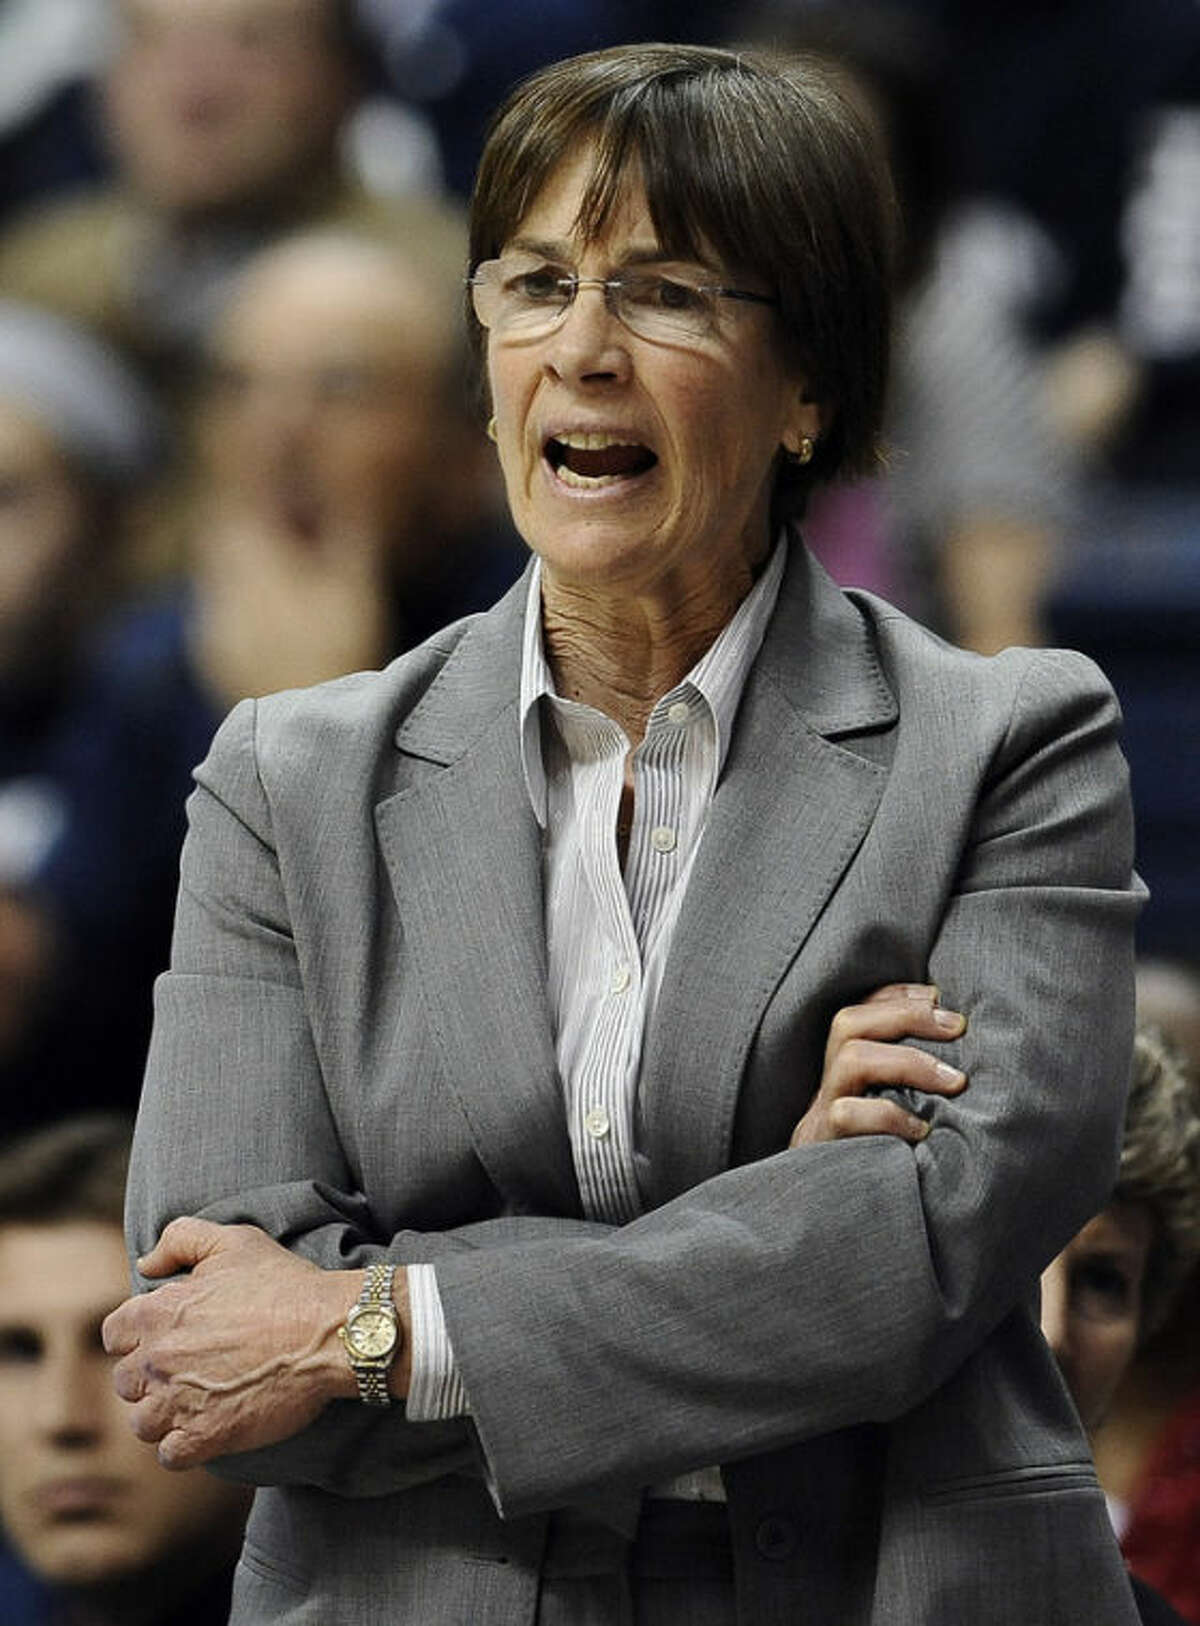 Stanford head coach Tara VanDerveer calls out to her team during the first half of an NCAA college basketball game against Connecticut, Monday, Nov. 11, 2013, in Storrs, Conn. (AP Photo/Jessica Hill)